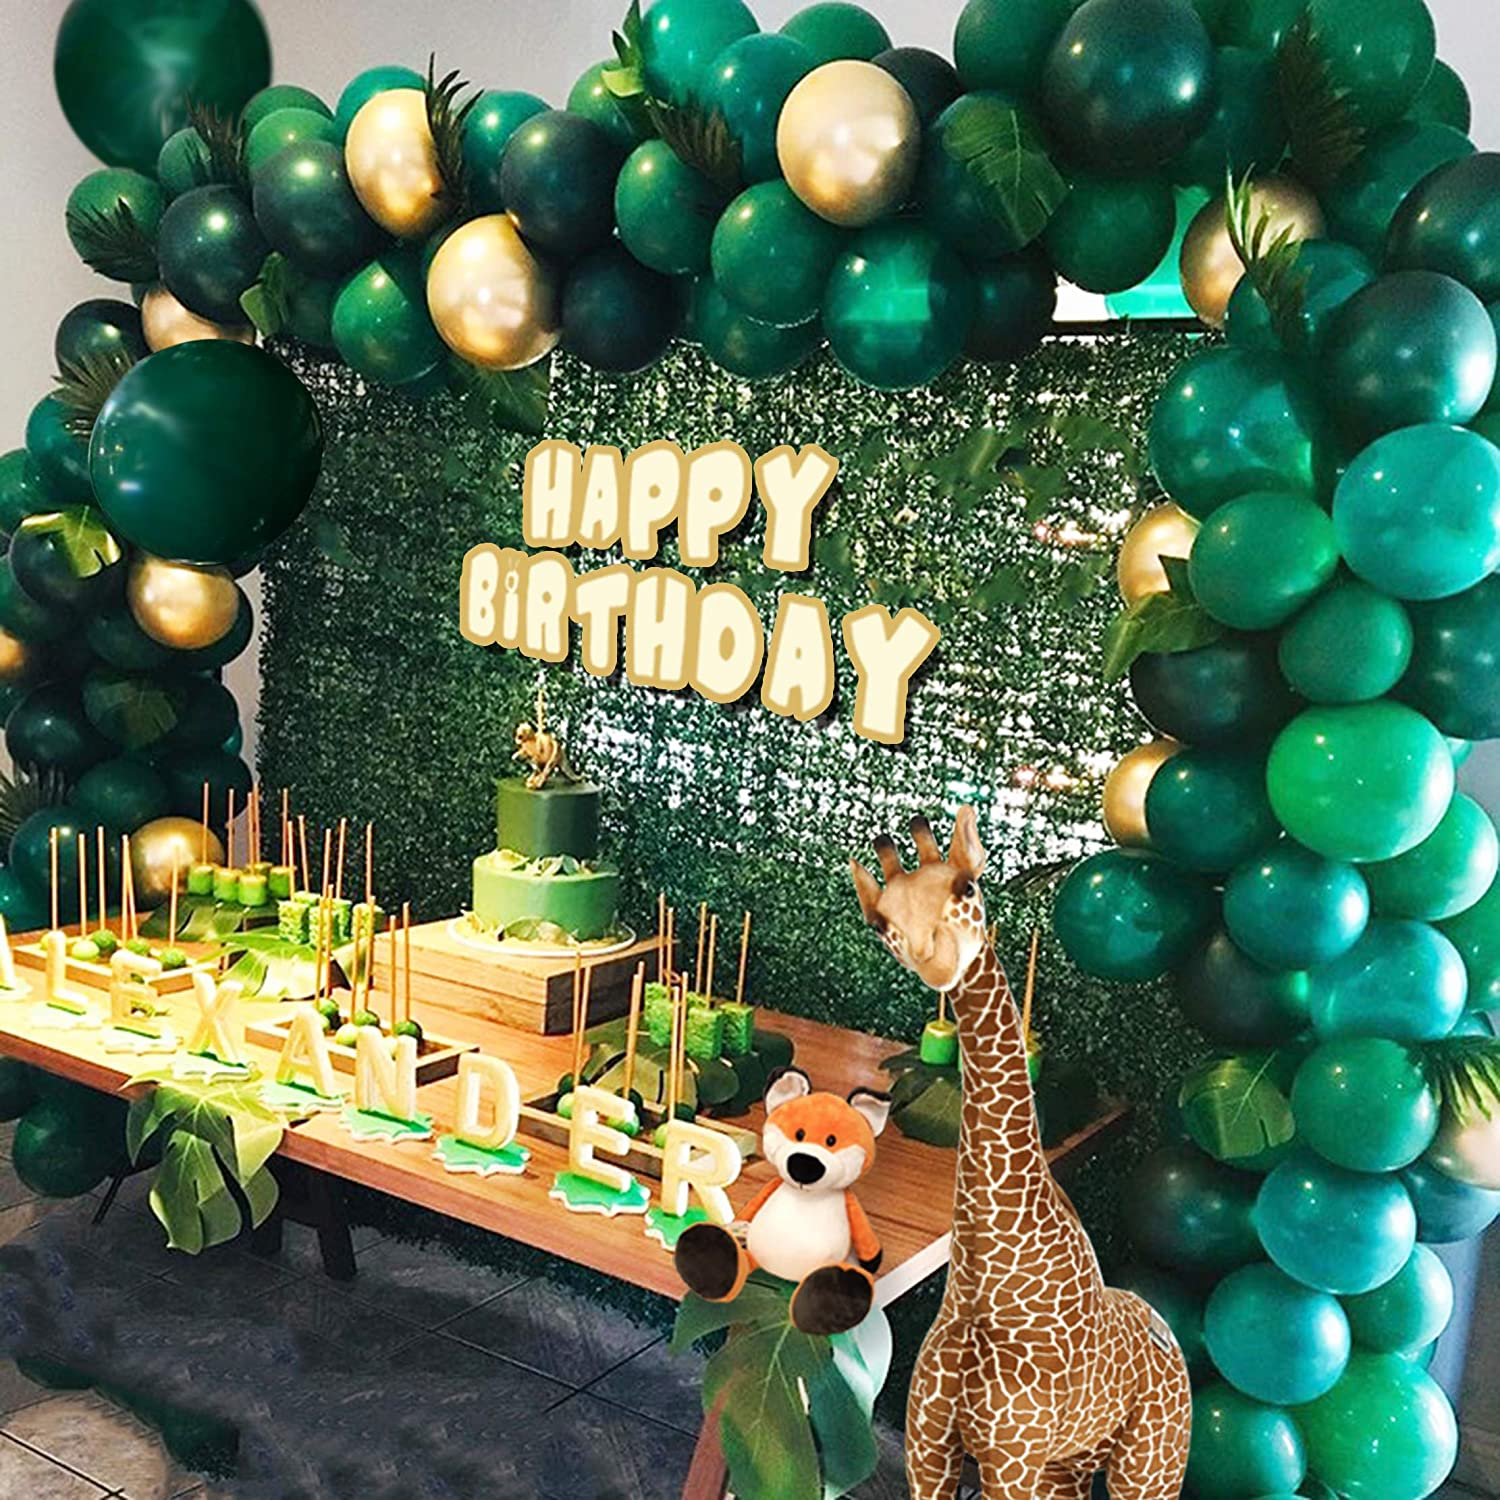 Jungle Theme Party Supplies :8pcs Green Balloon Garland Arch Kit, with 8  Green Palm Leaves for Birthdays, Baby Shower, Safari Party Decorations